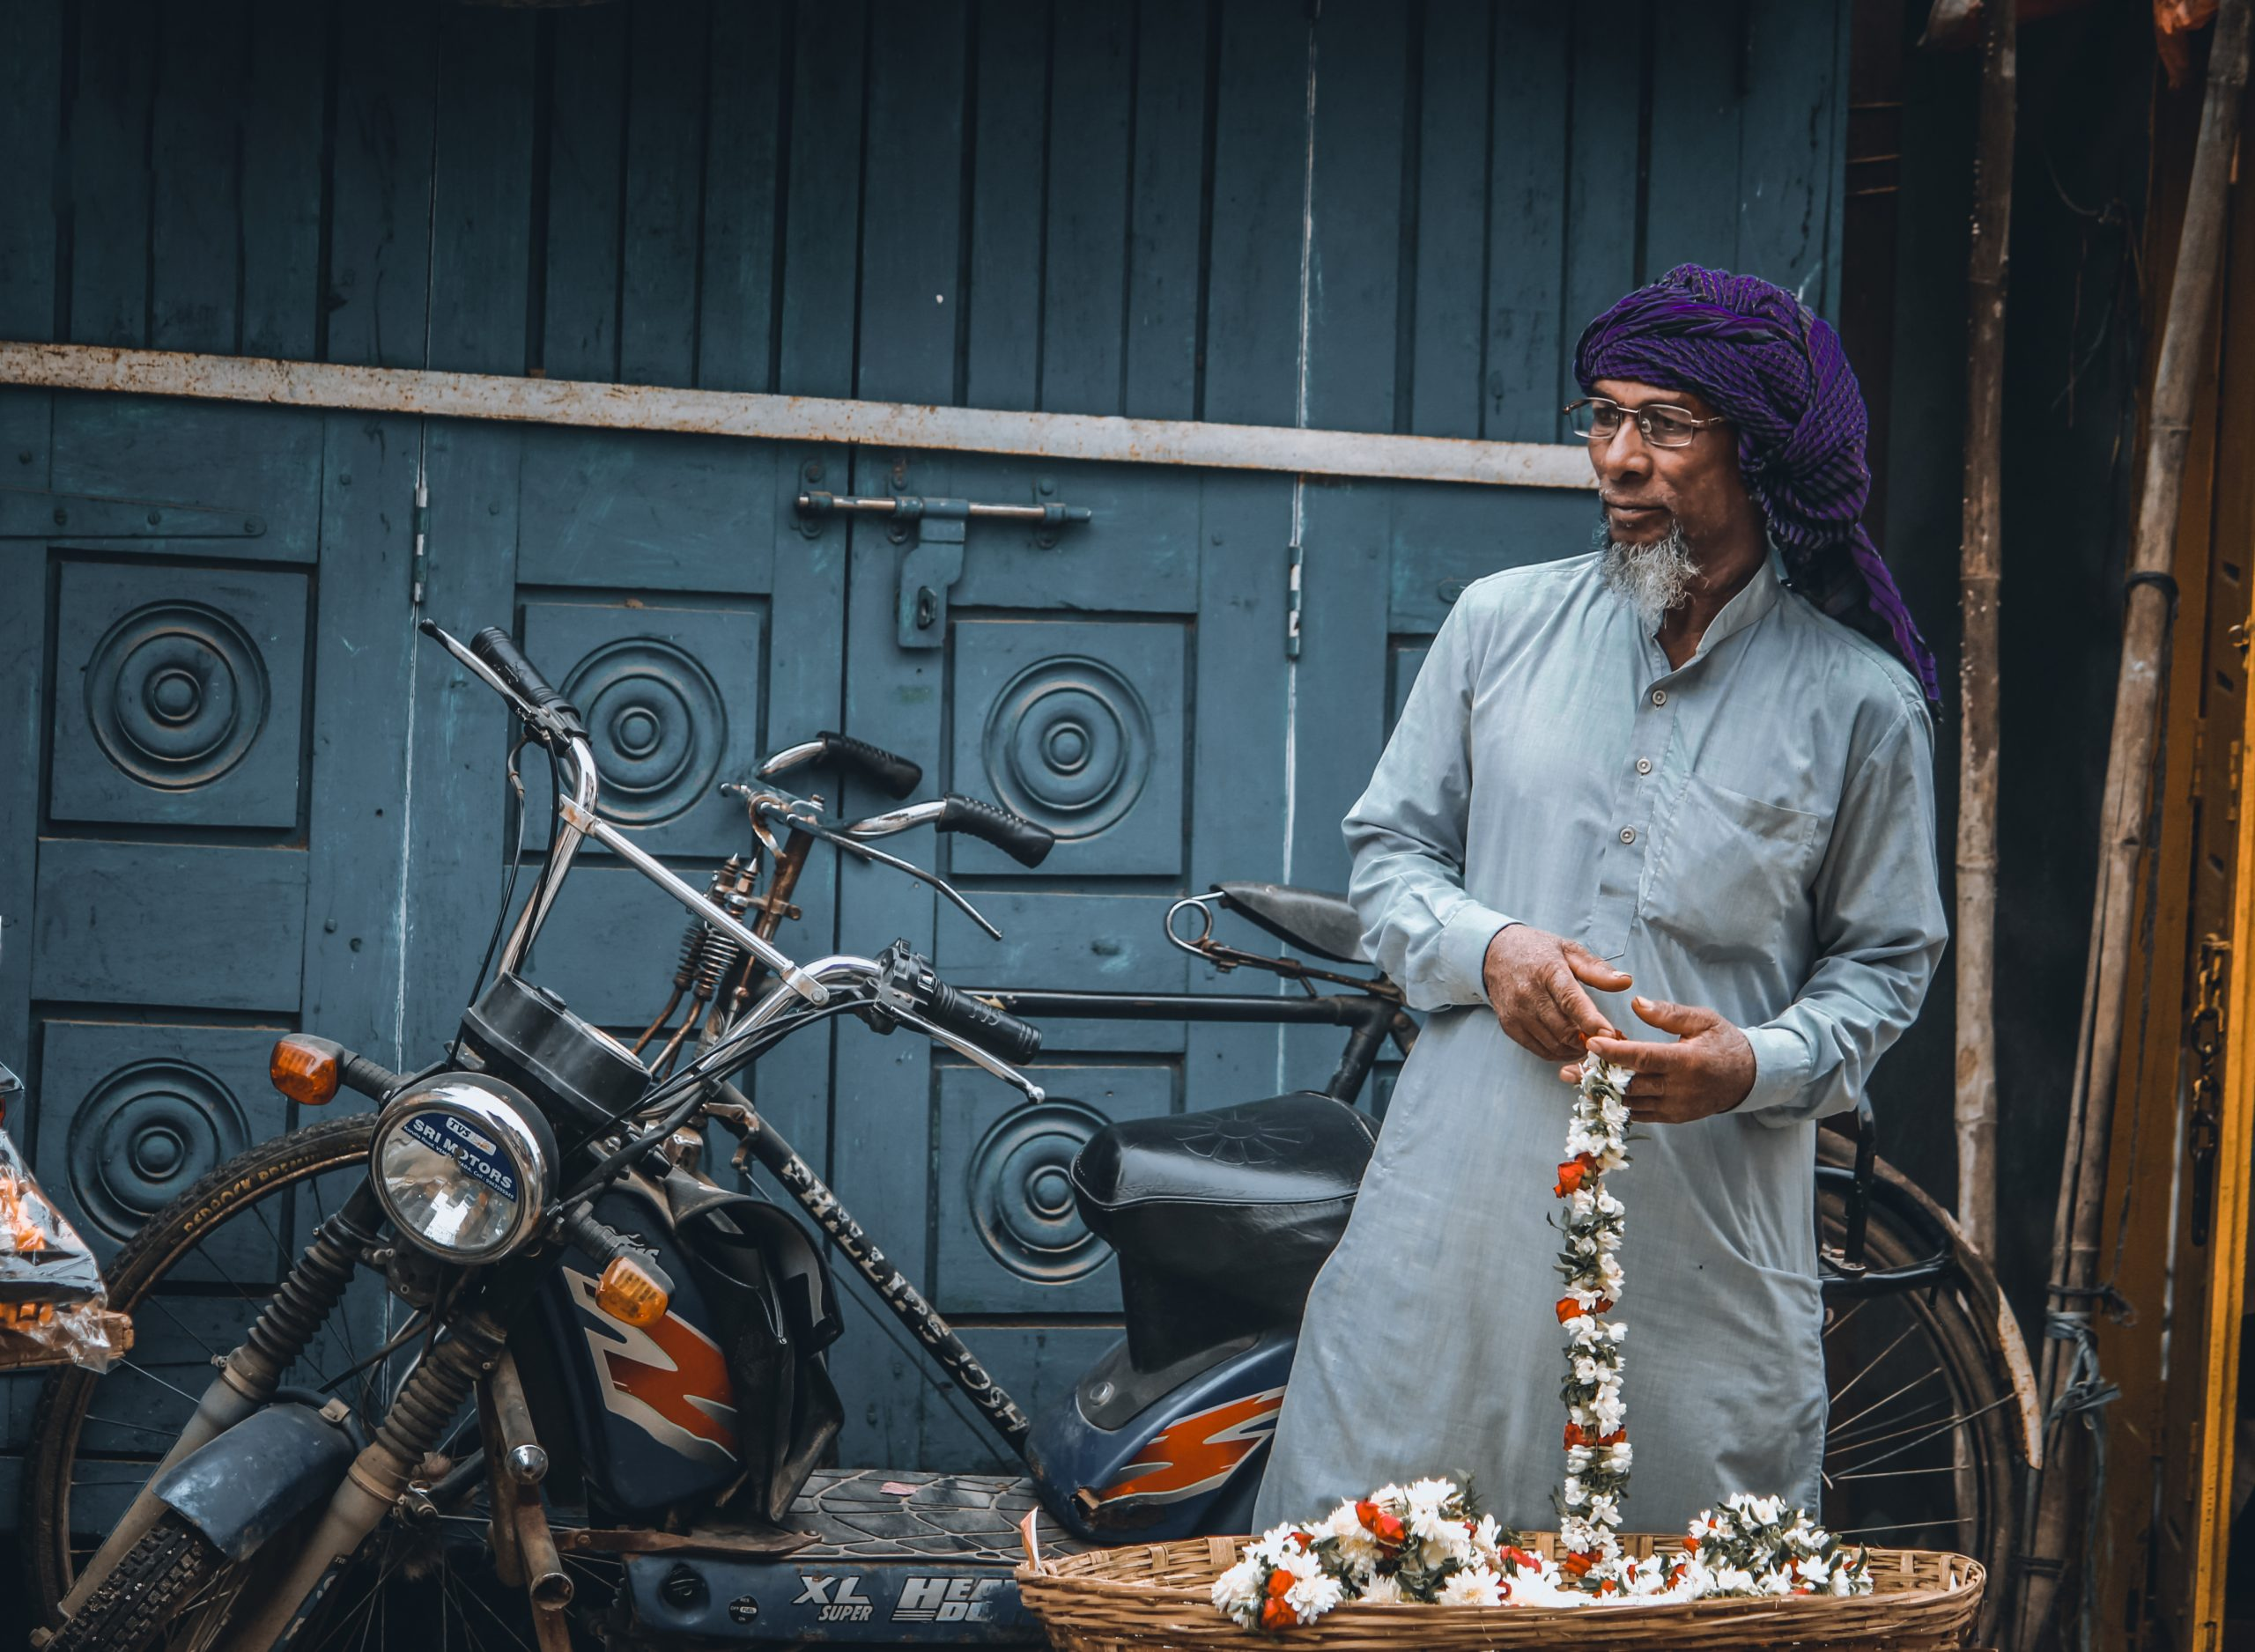 A flower seller in a street